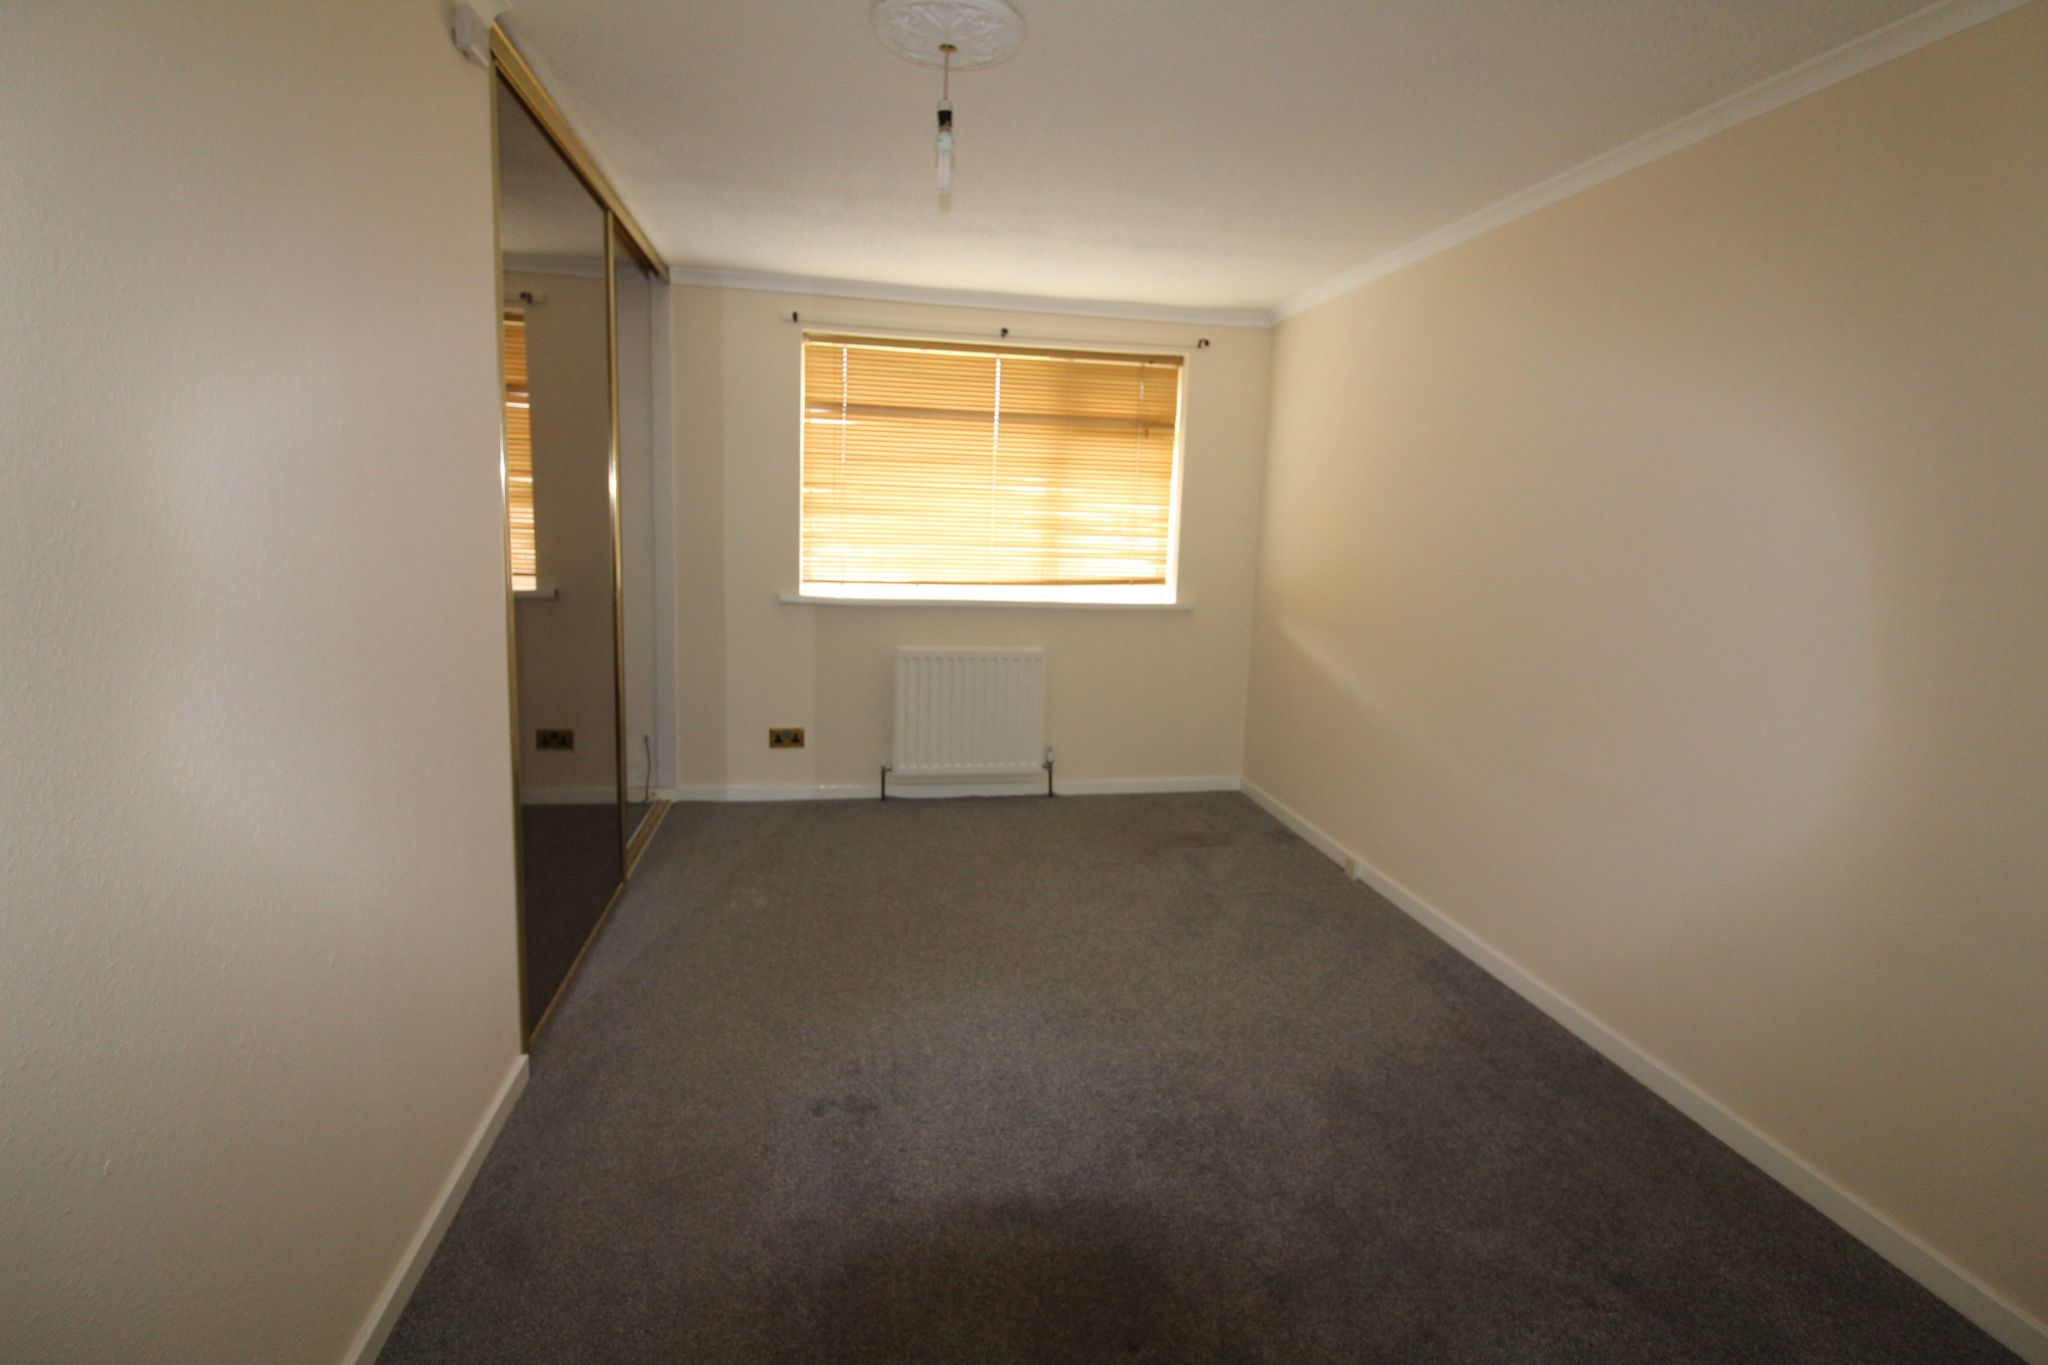 2 bedroom mid terraced house For Sale in Durham - Photograph 11.